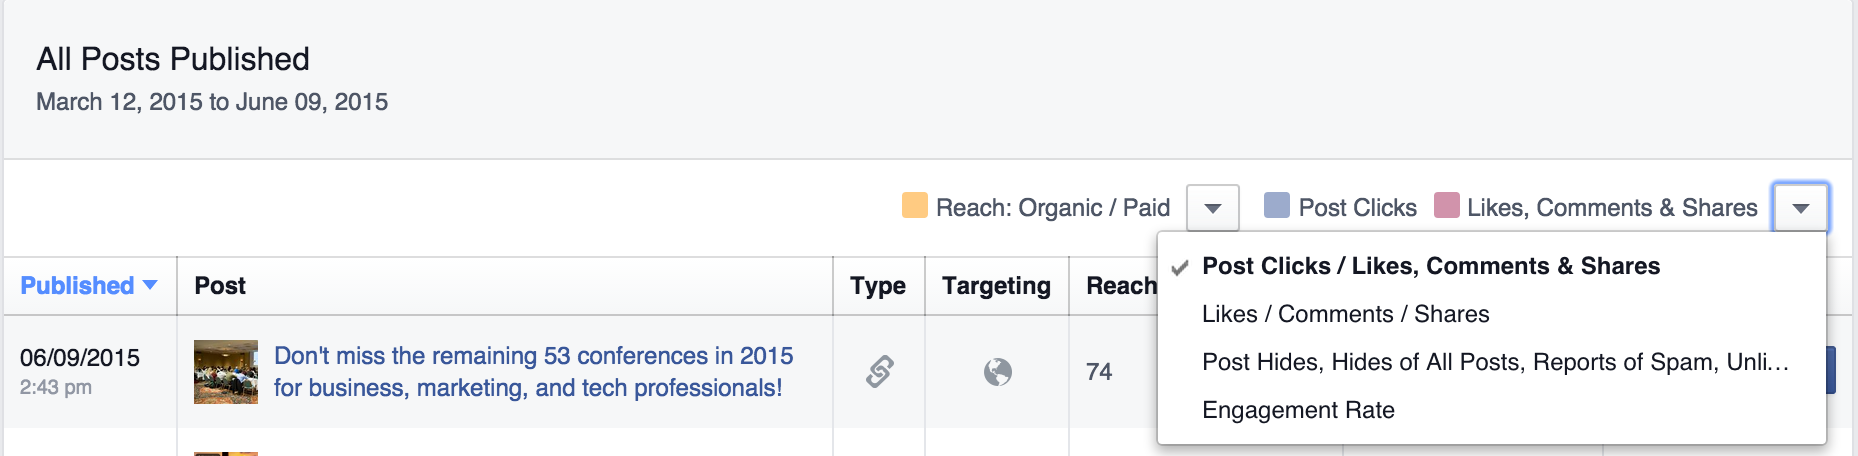 facebook metrics post clicks screenshot